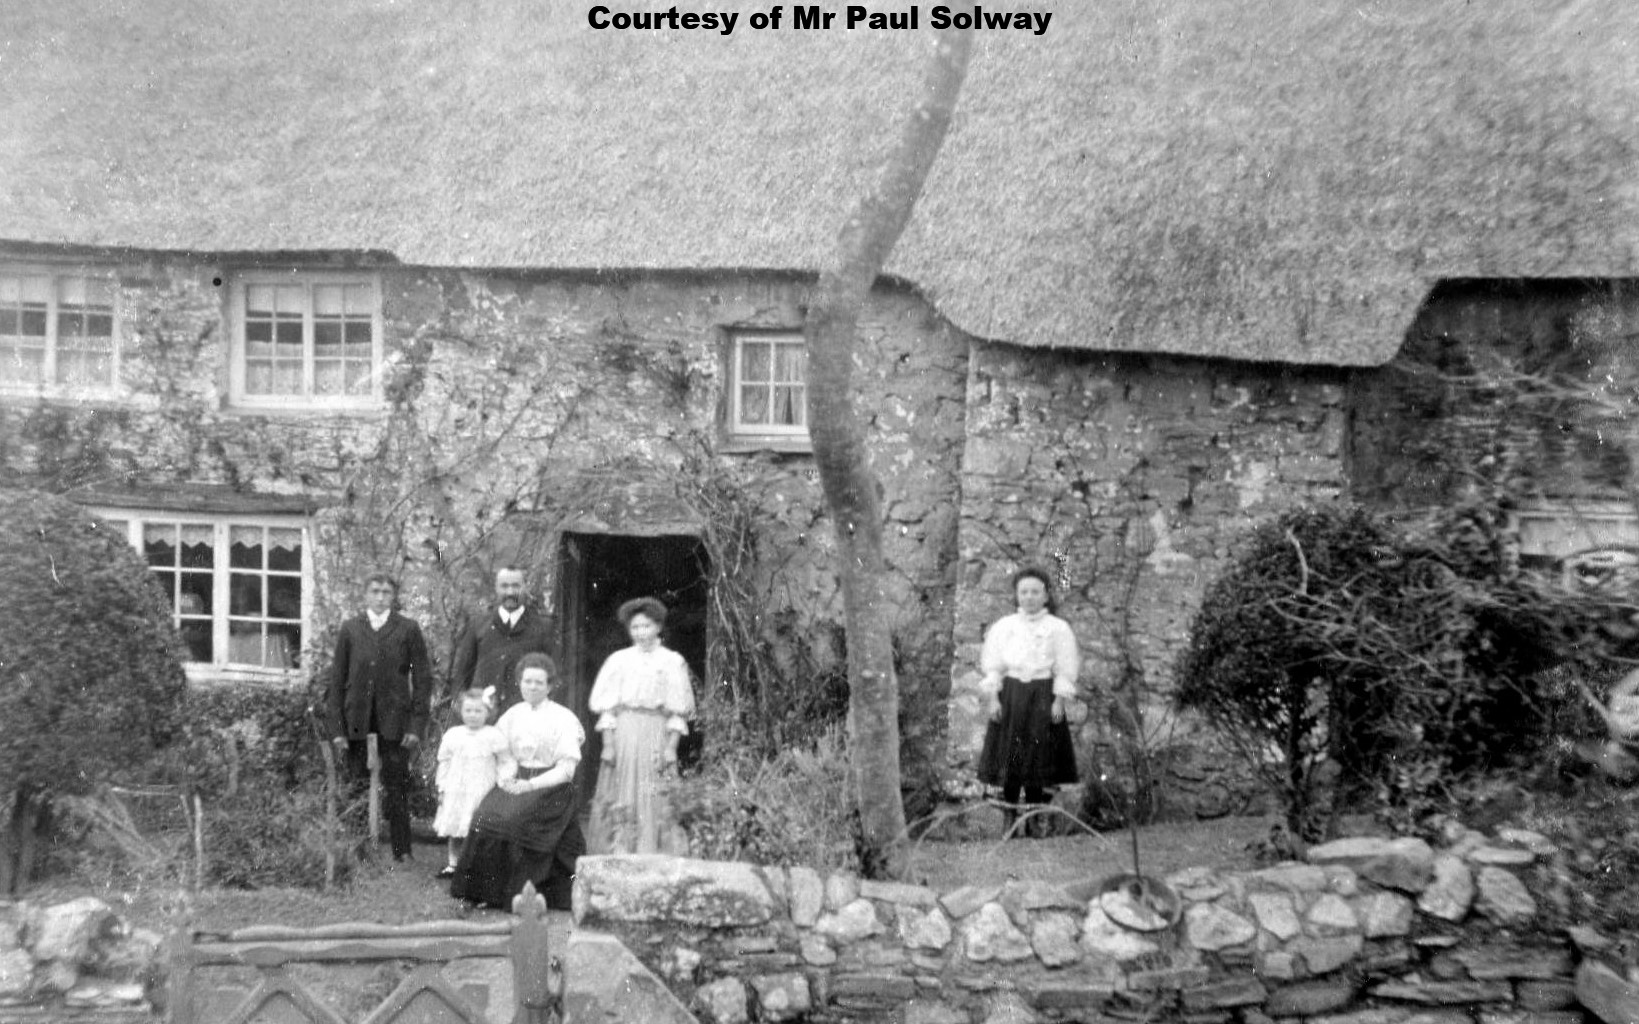 Pencrennow 1910 - The Rowland Family